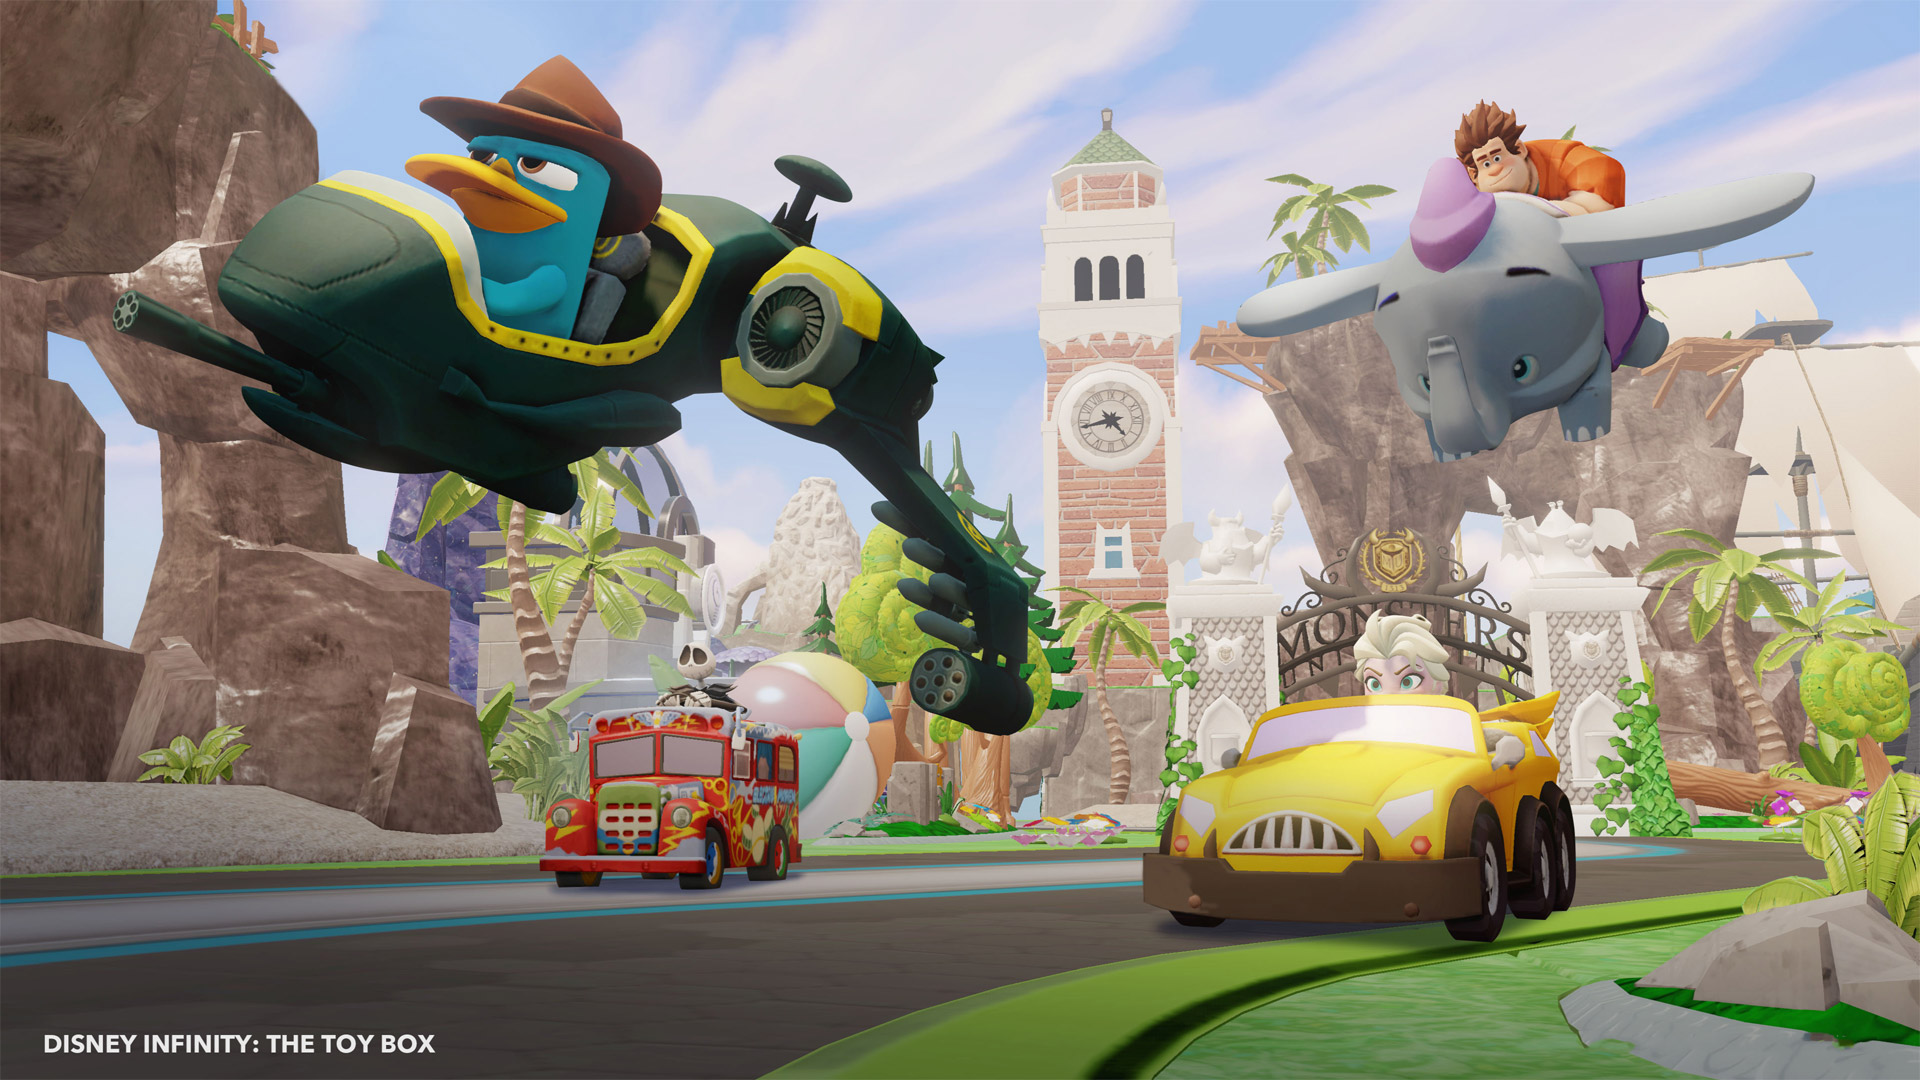 Disney Infinity wallpaper 8